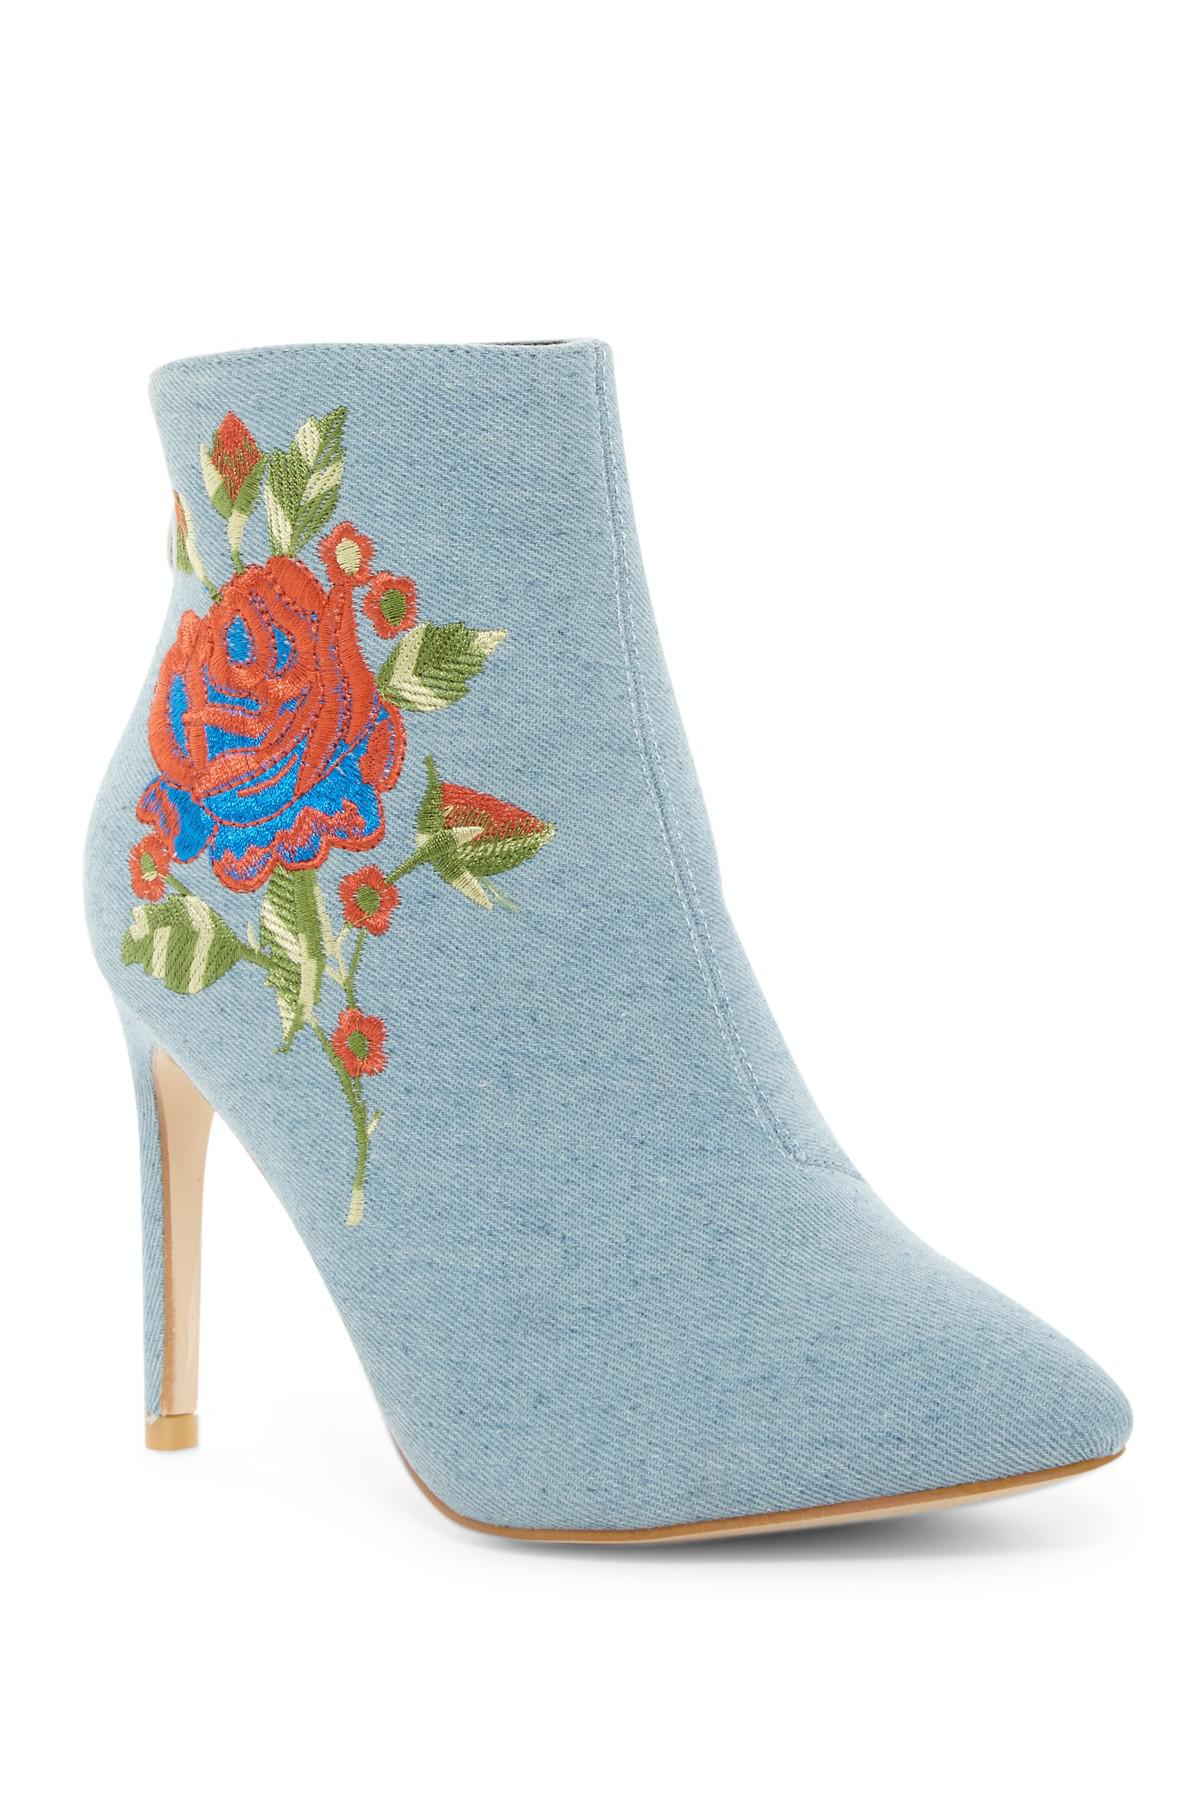 Cape Robbin Mini Embroidered Bootie udaunzY4